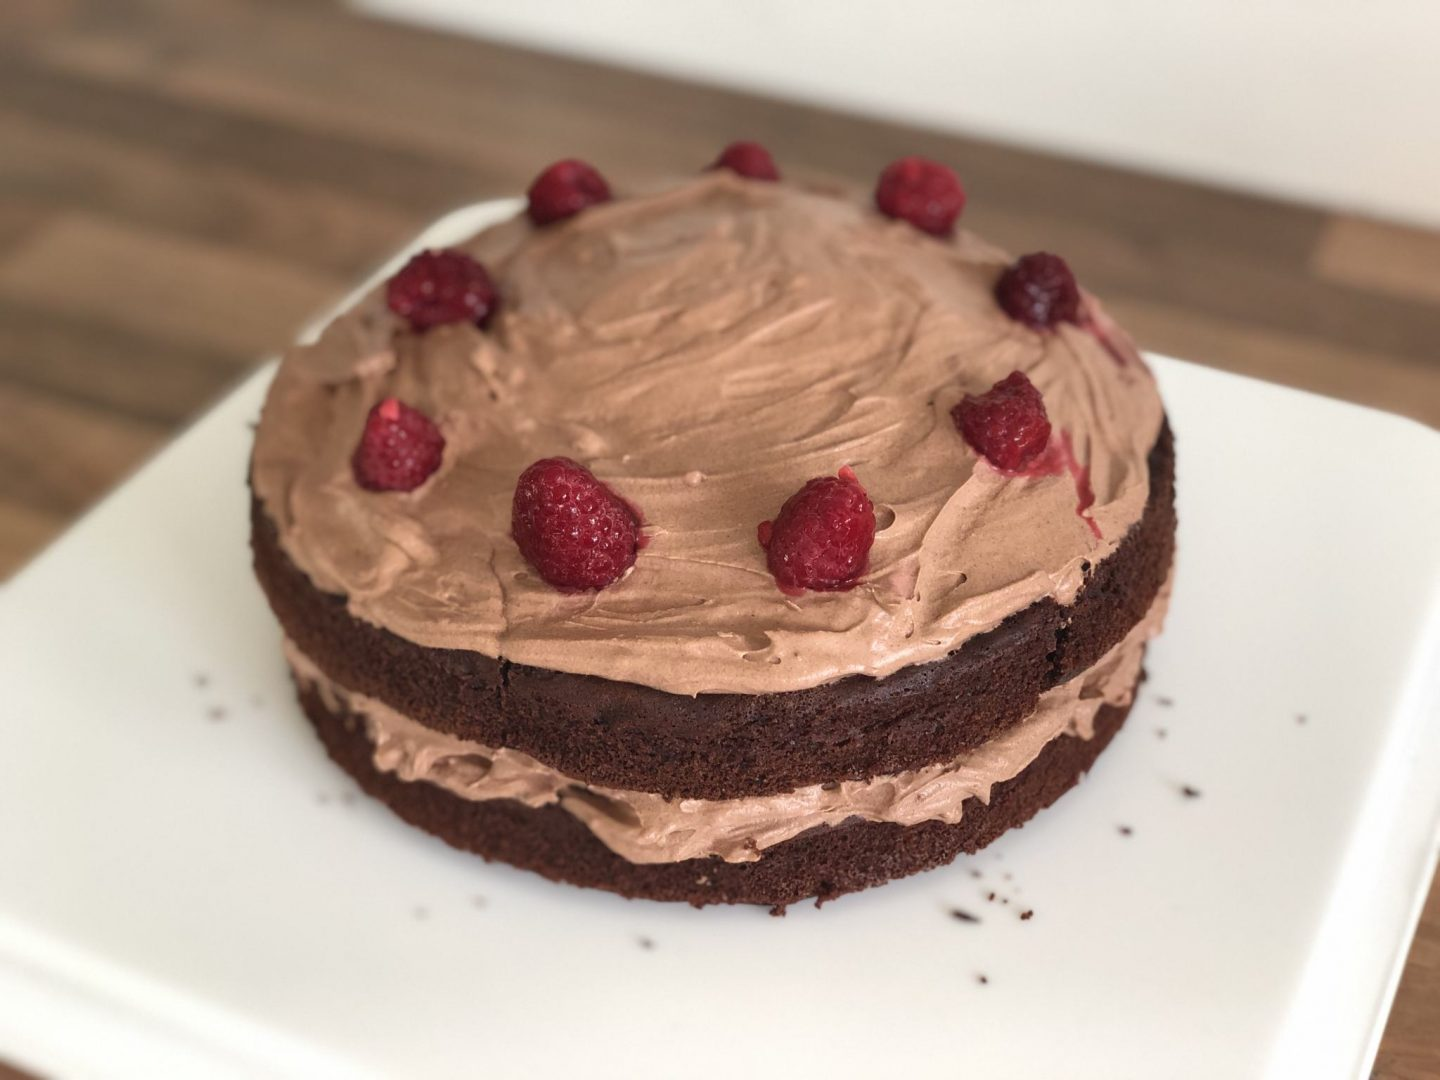 kirstie pickering dairy free chocolate cake recipe vegan baking food instagram inspiration foodstagram healthy raspberries blog blogger